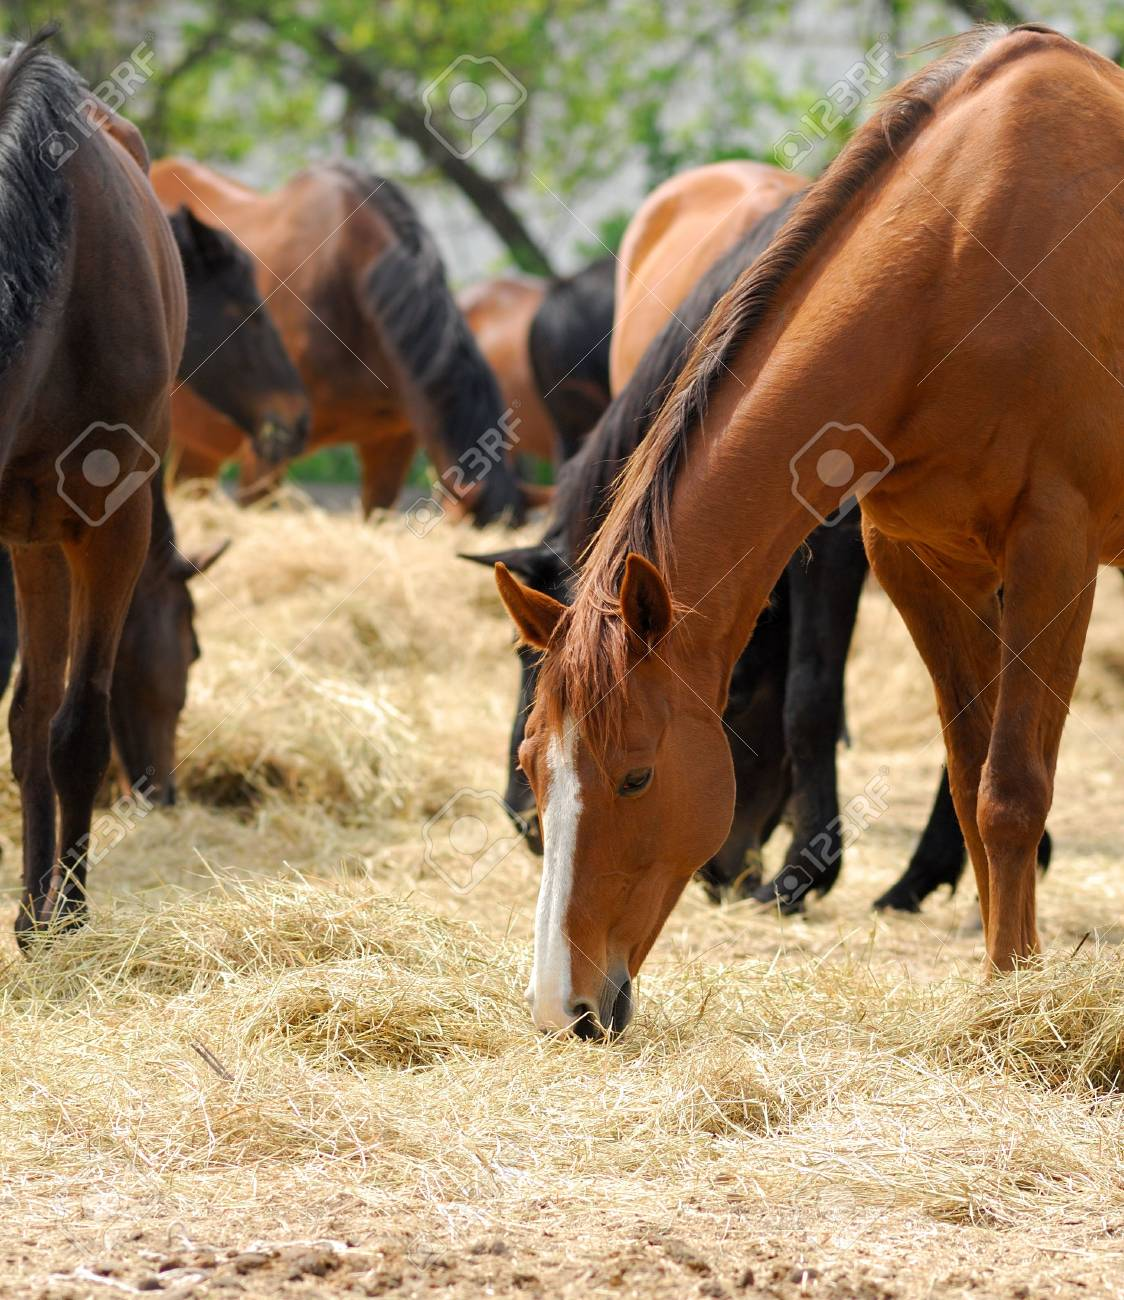 Horses of  English breed in shelter on  farm in solar, summer day Stock Photo - 5203659